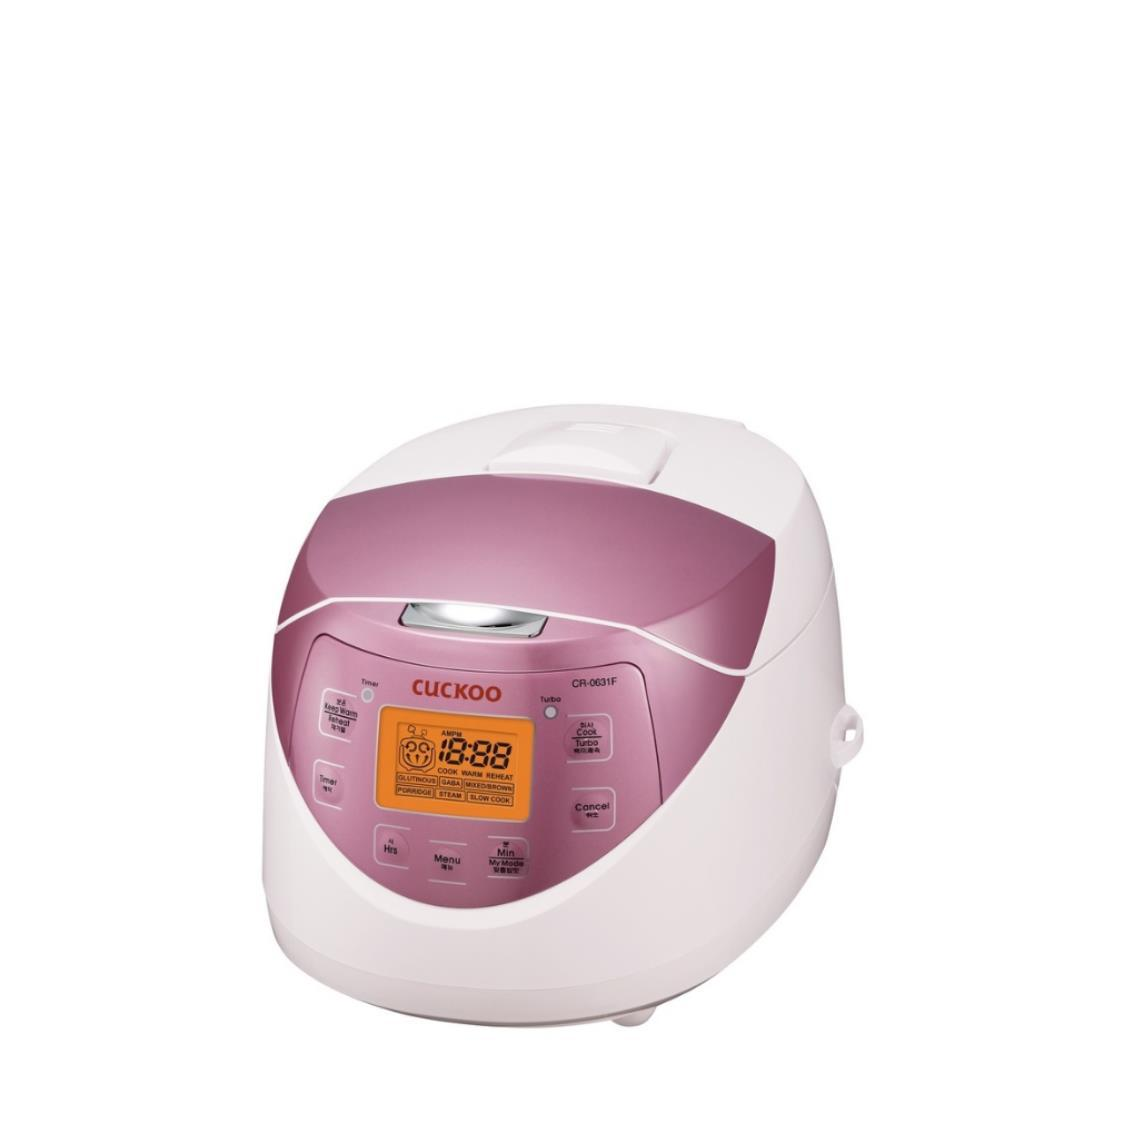 Micro Computerized Multi-funtional Rice Cooker 1L